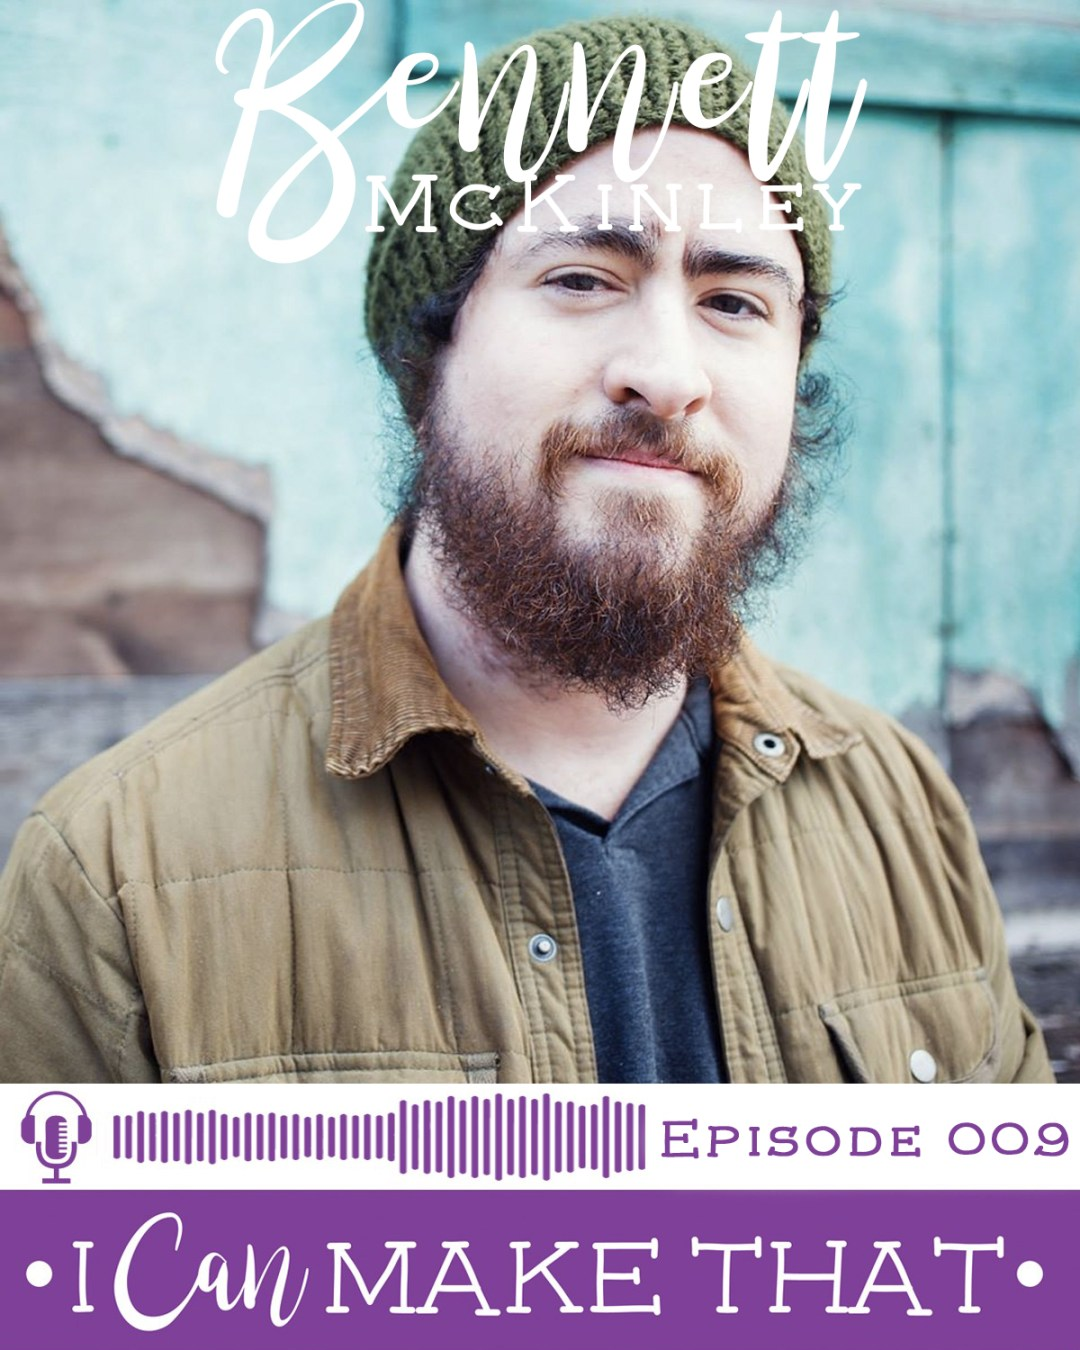 I Can Make That Podcast | Episode 009 :: Bennett McKinley